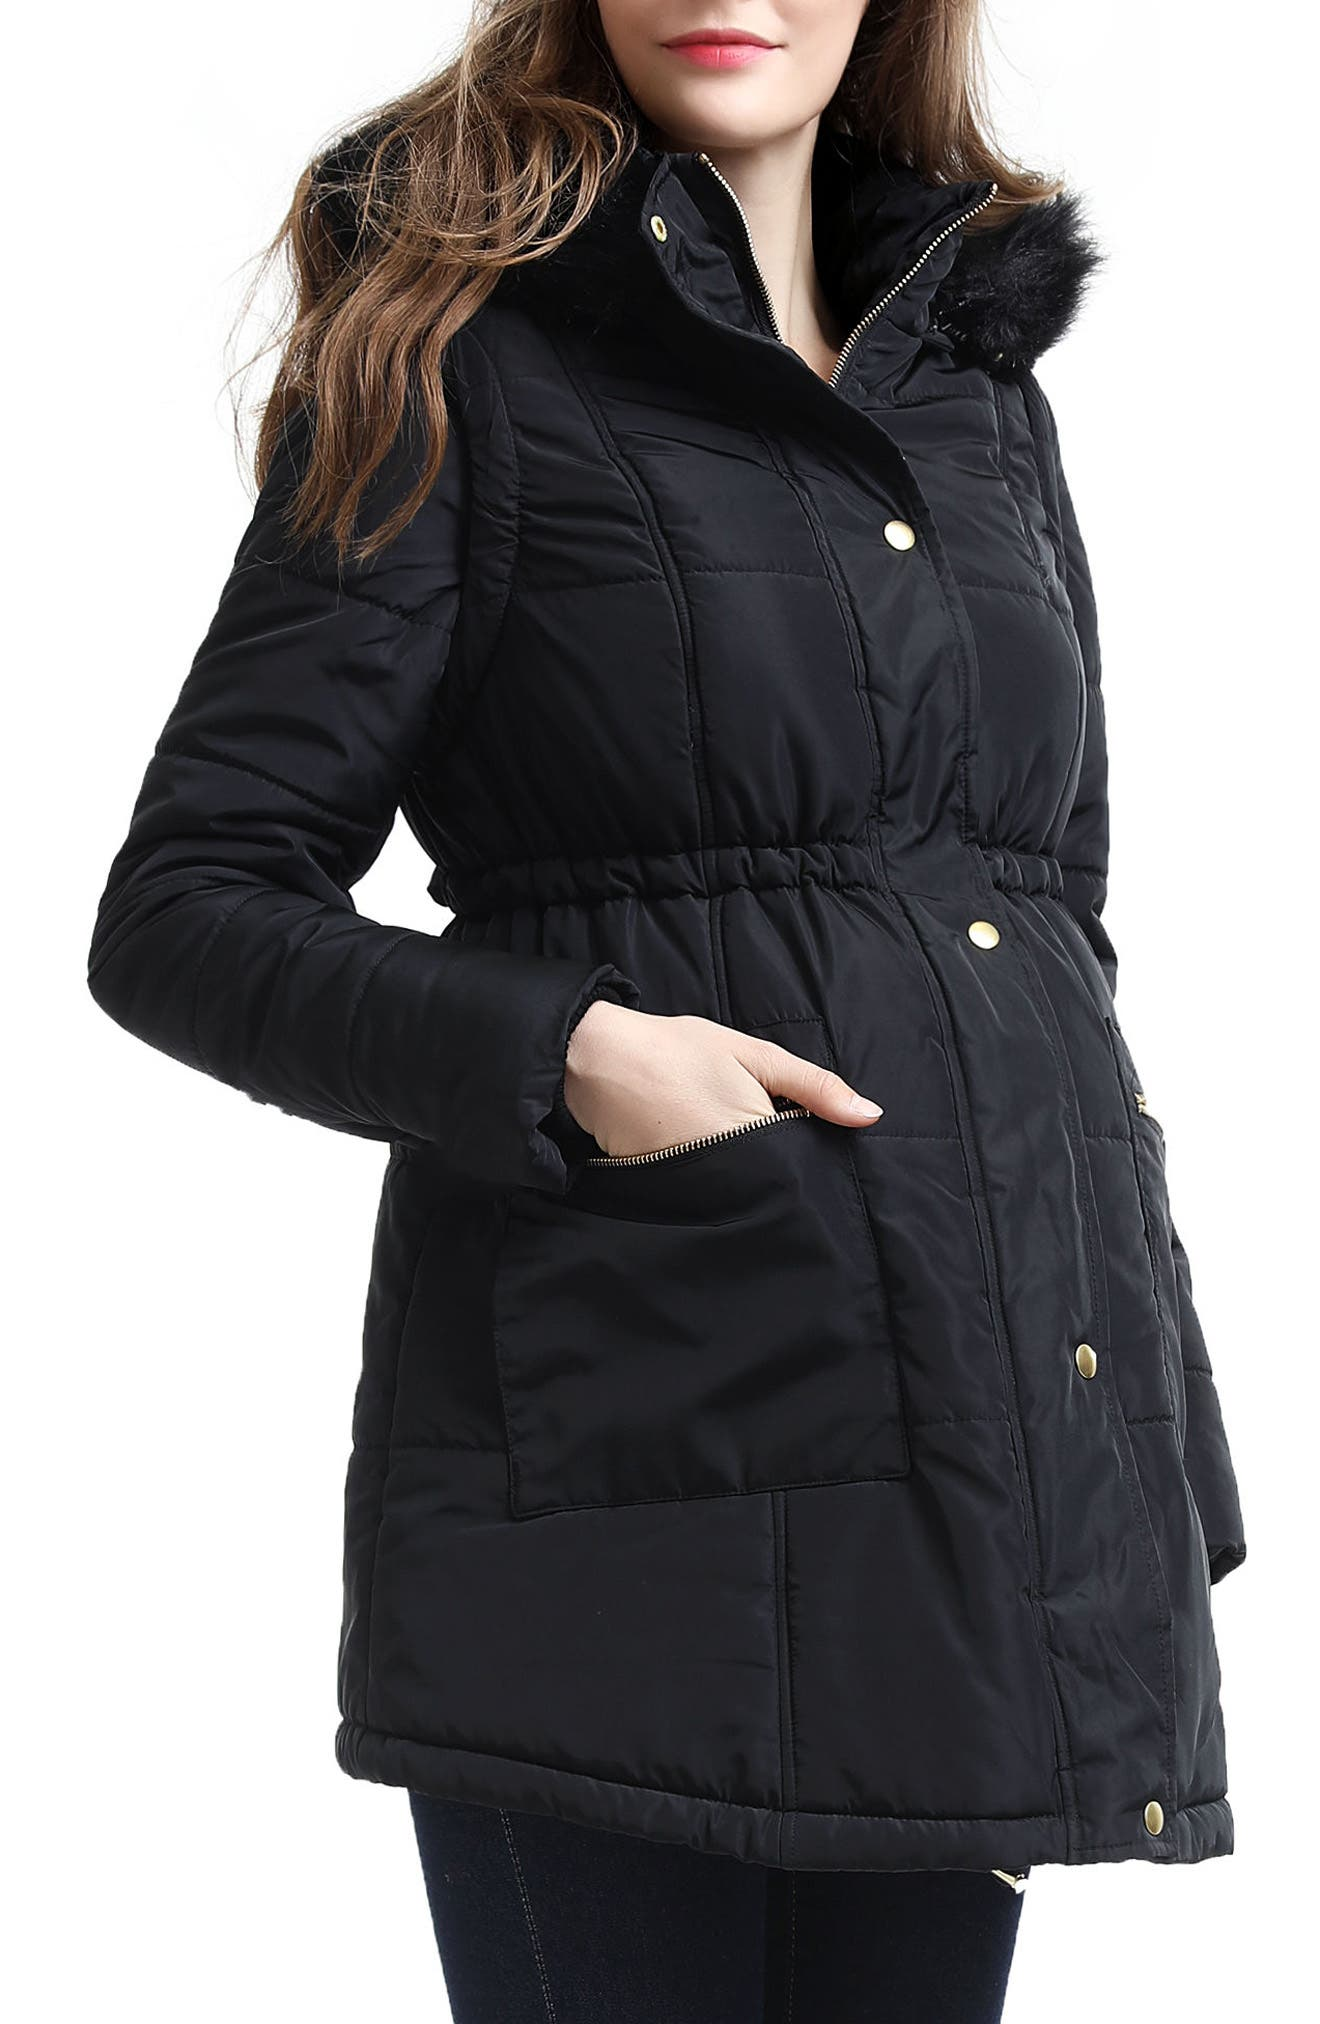 Mina 2-in-1 Hooded Maternity Coat,                             Alternate thumbnail 3, color,                             Black